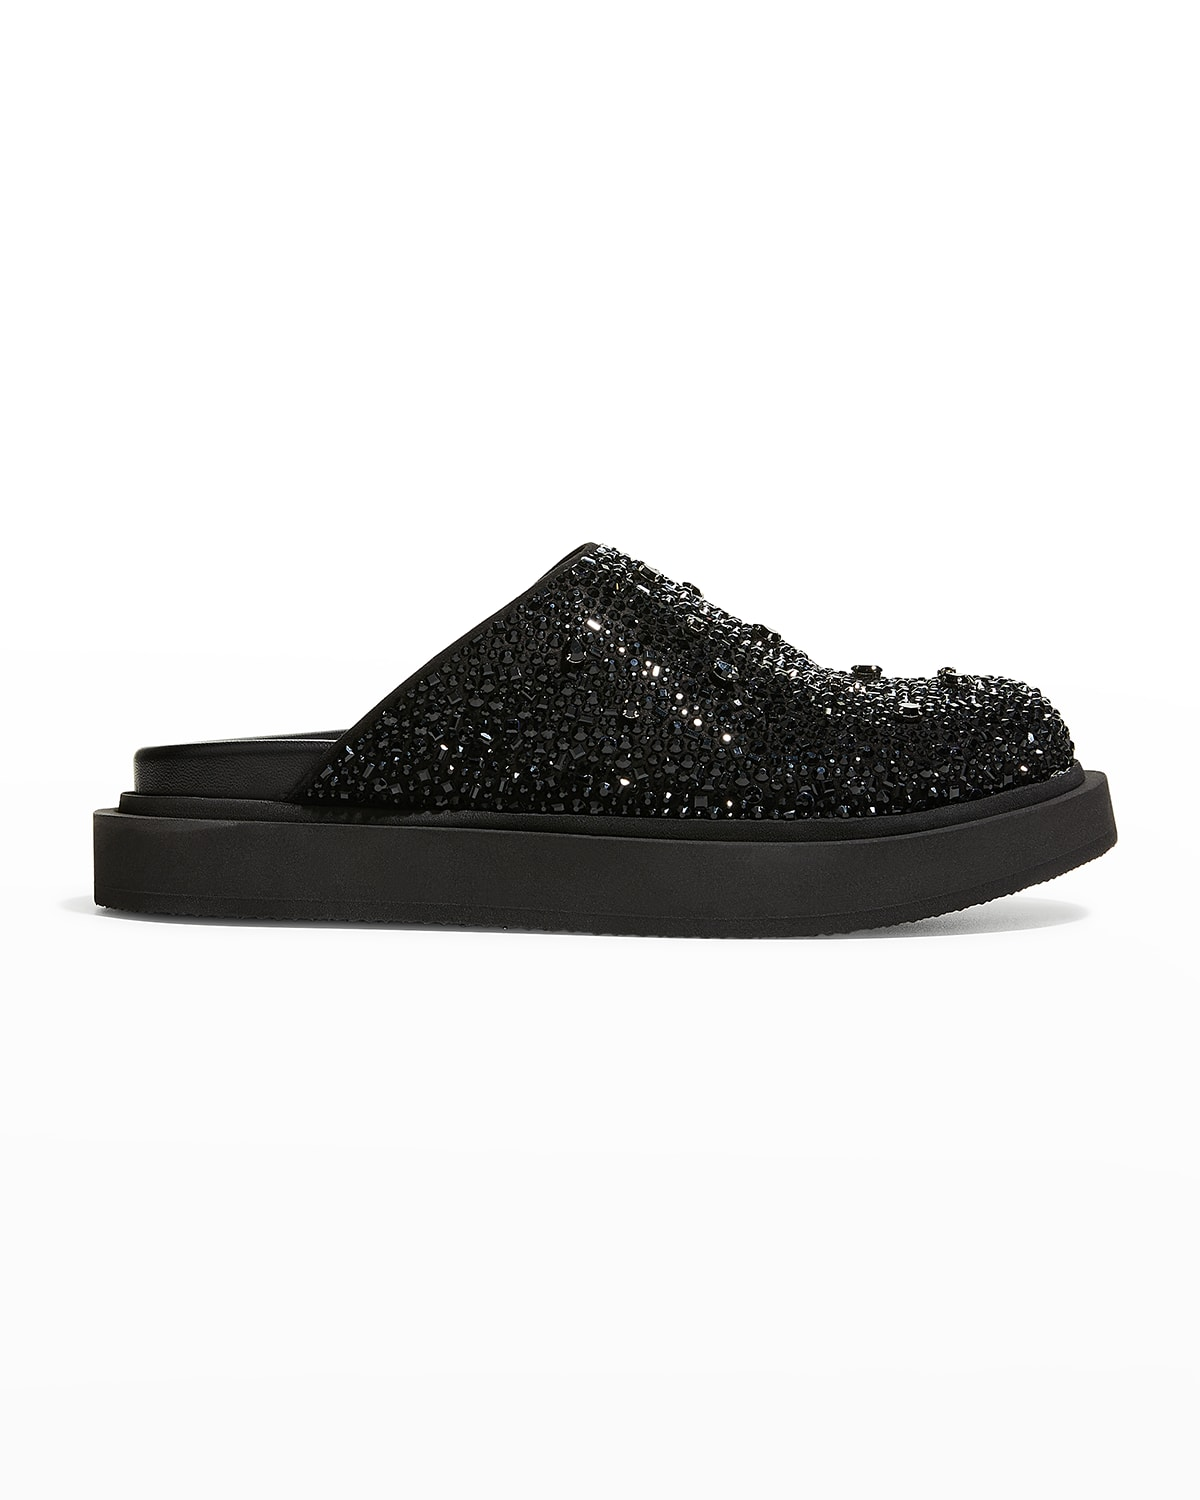 Men's Jeweled Leather Slide Mules